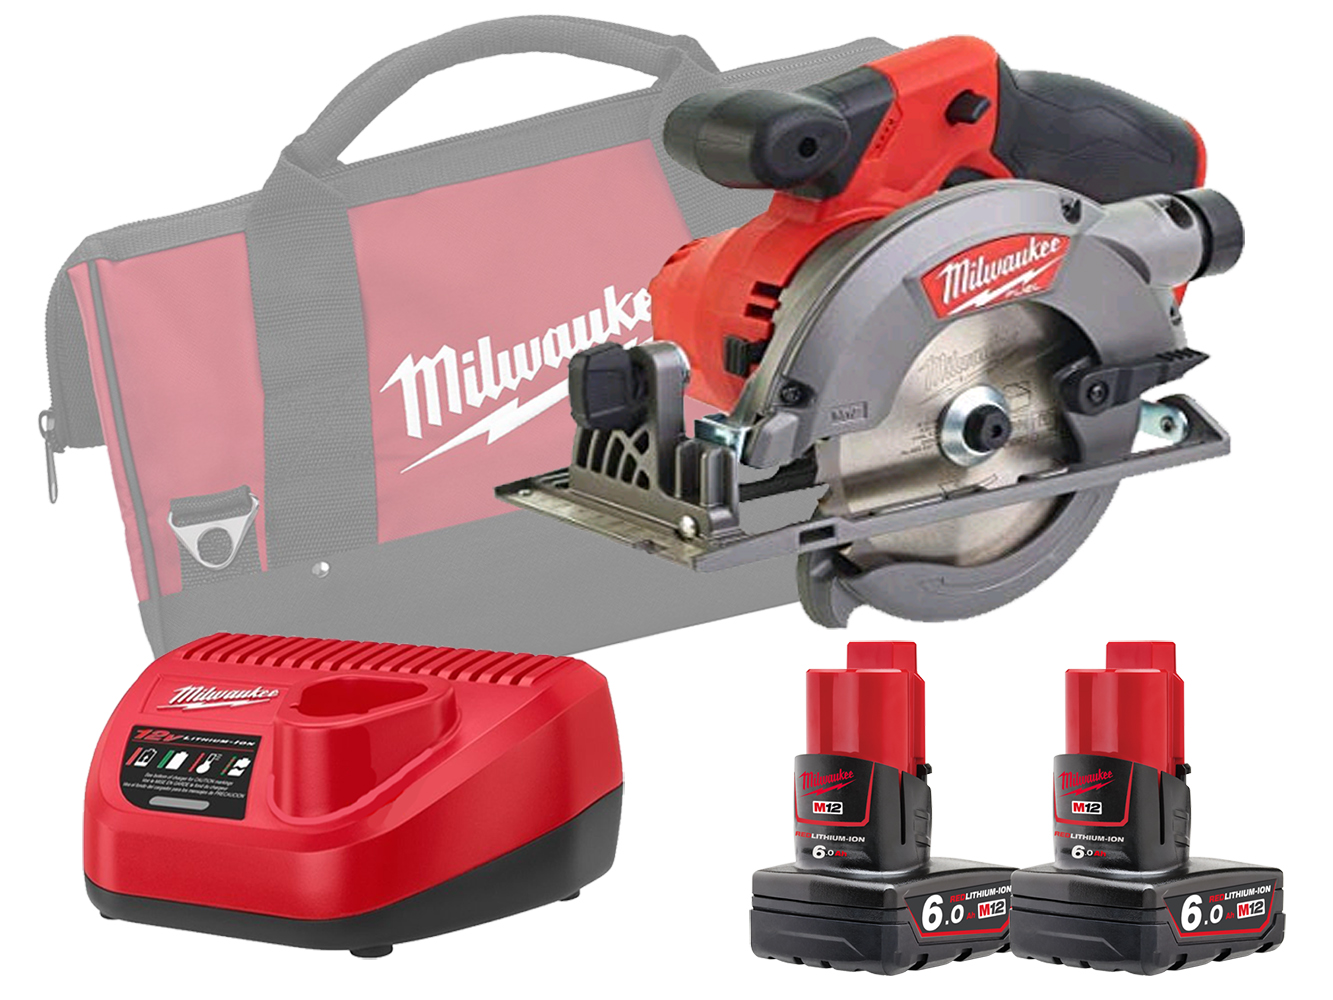 Milwaukee M12CCS44 12V Sub Compact 140mm (44mm) Circular Saw Brushless - 6.0ah Pack